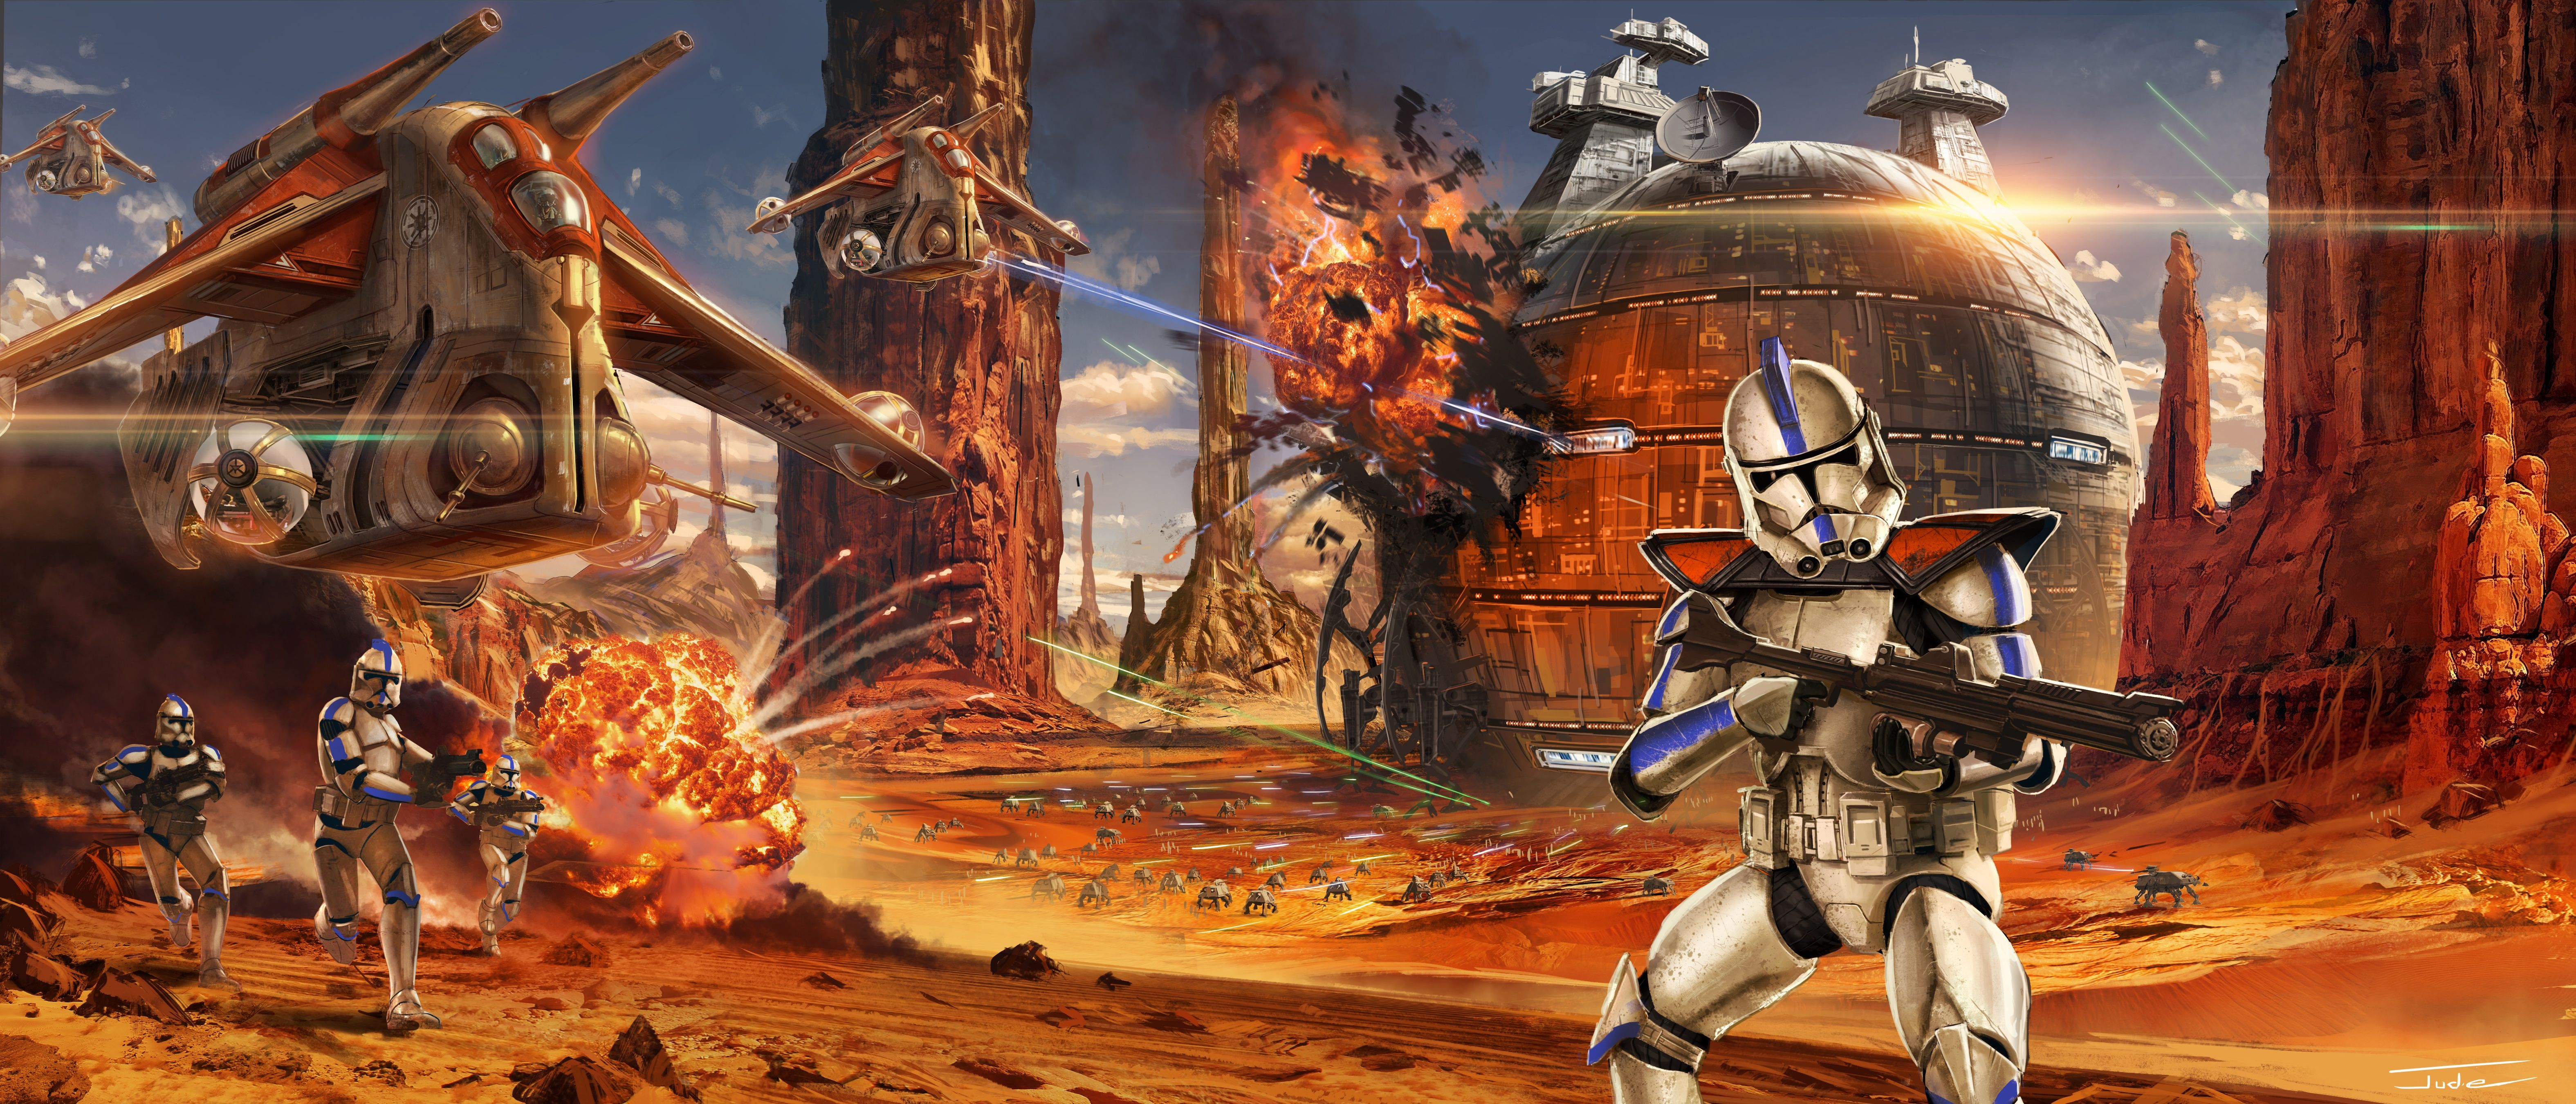 Star Wars The Clone Wars Wallpapers Top Free Star Wars The Clone Wars Backgrounds Wallpaperaccess